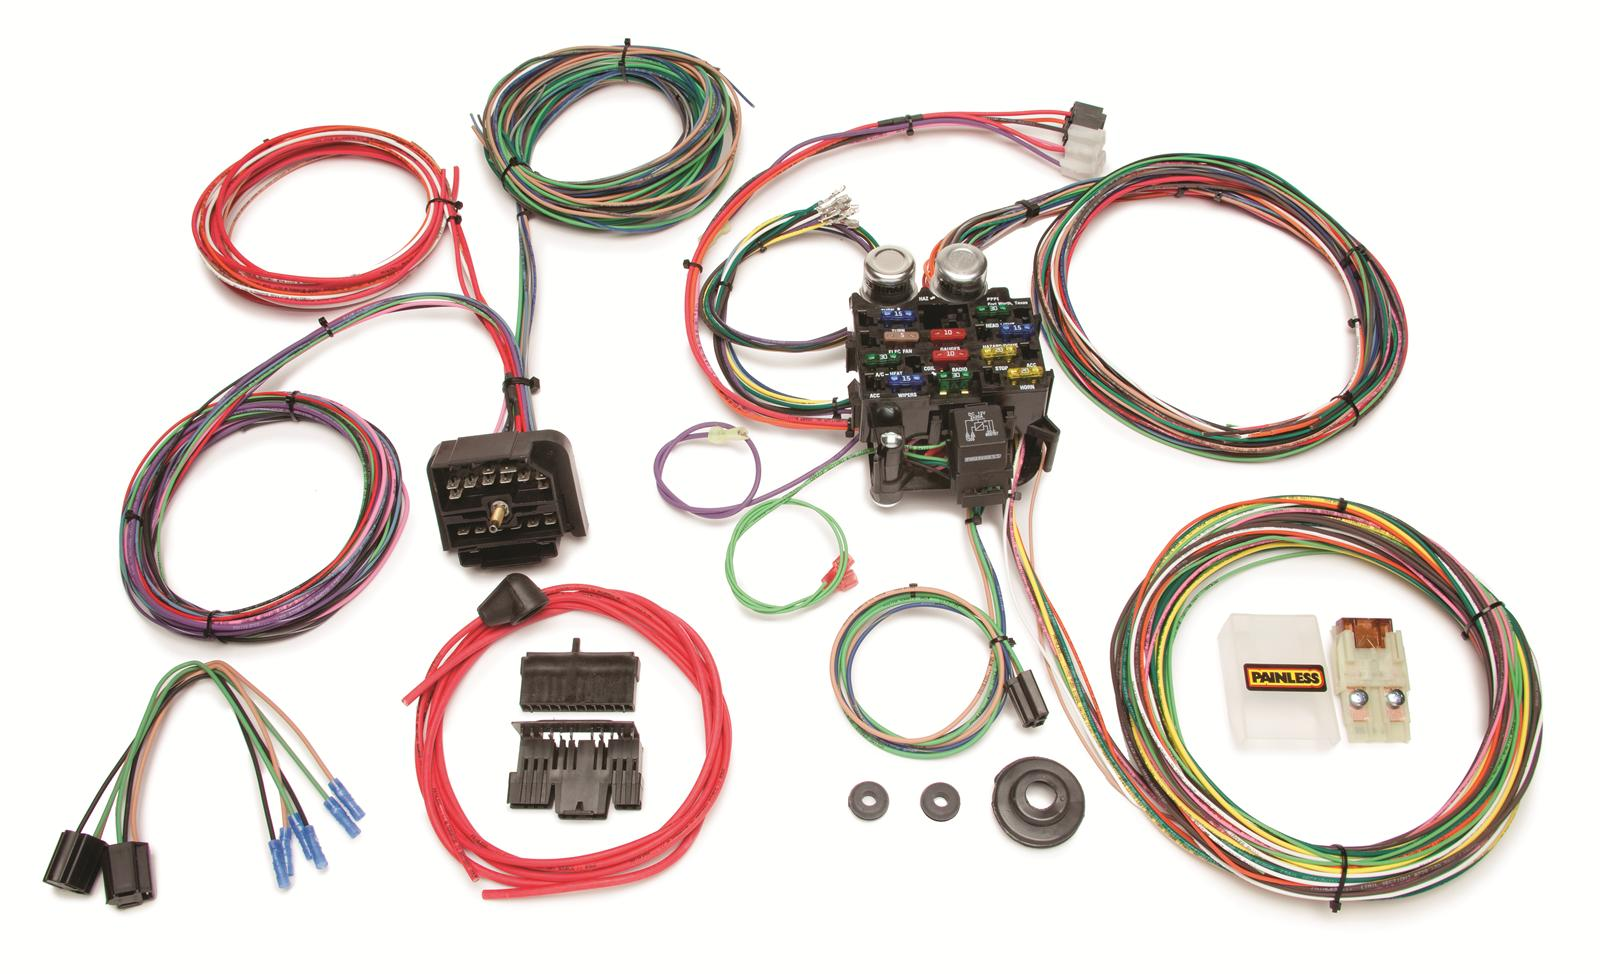 Wiring Harness For Jeep Cj5 Library Cj Painless Performance 22 Circuit Harnesses 10106 Free Shipping On Orders Over 49